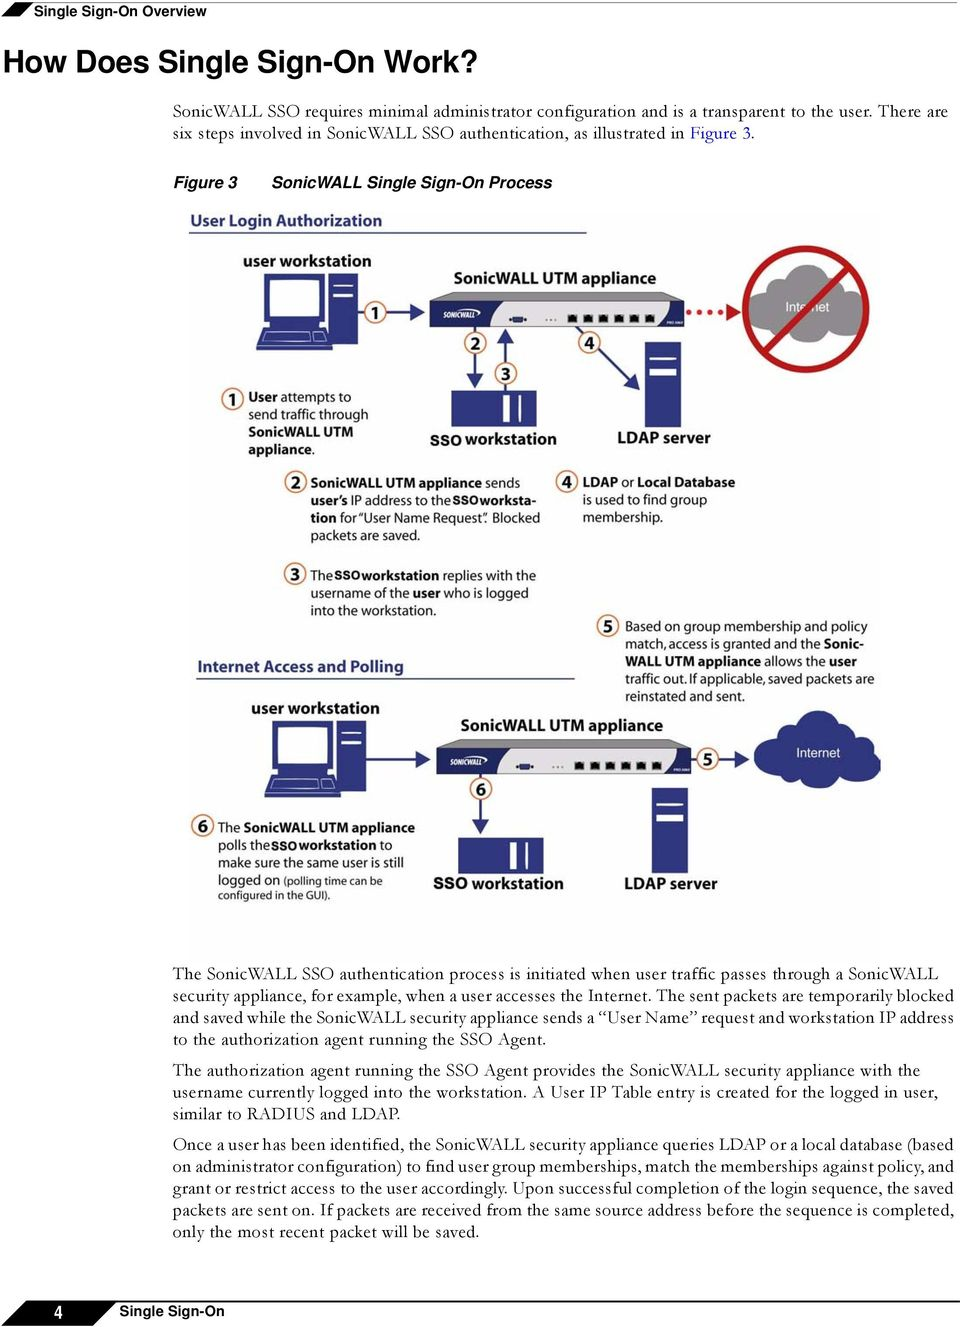 Figure 3 SonicWALL Single Sign-On Process The SonicWALL SSO authentication process is initiated when user traffic passes through a SonicWALL security appliance, for example, when a user accesses the